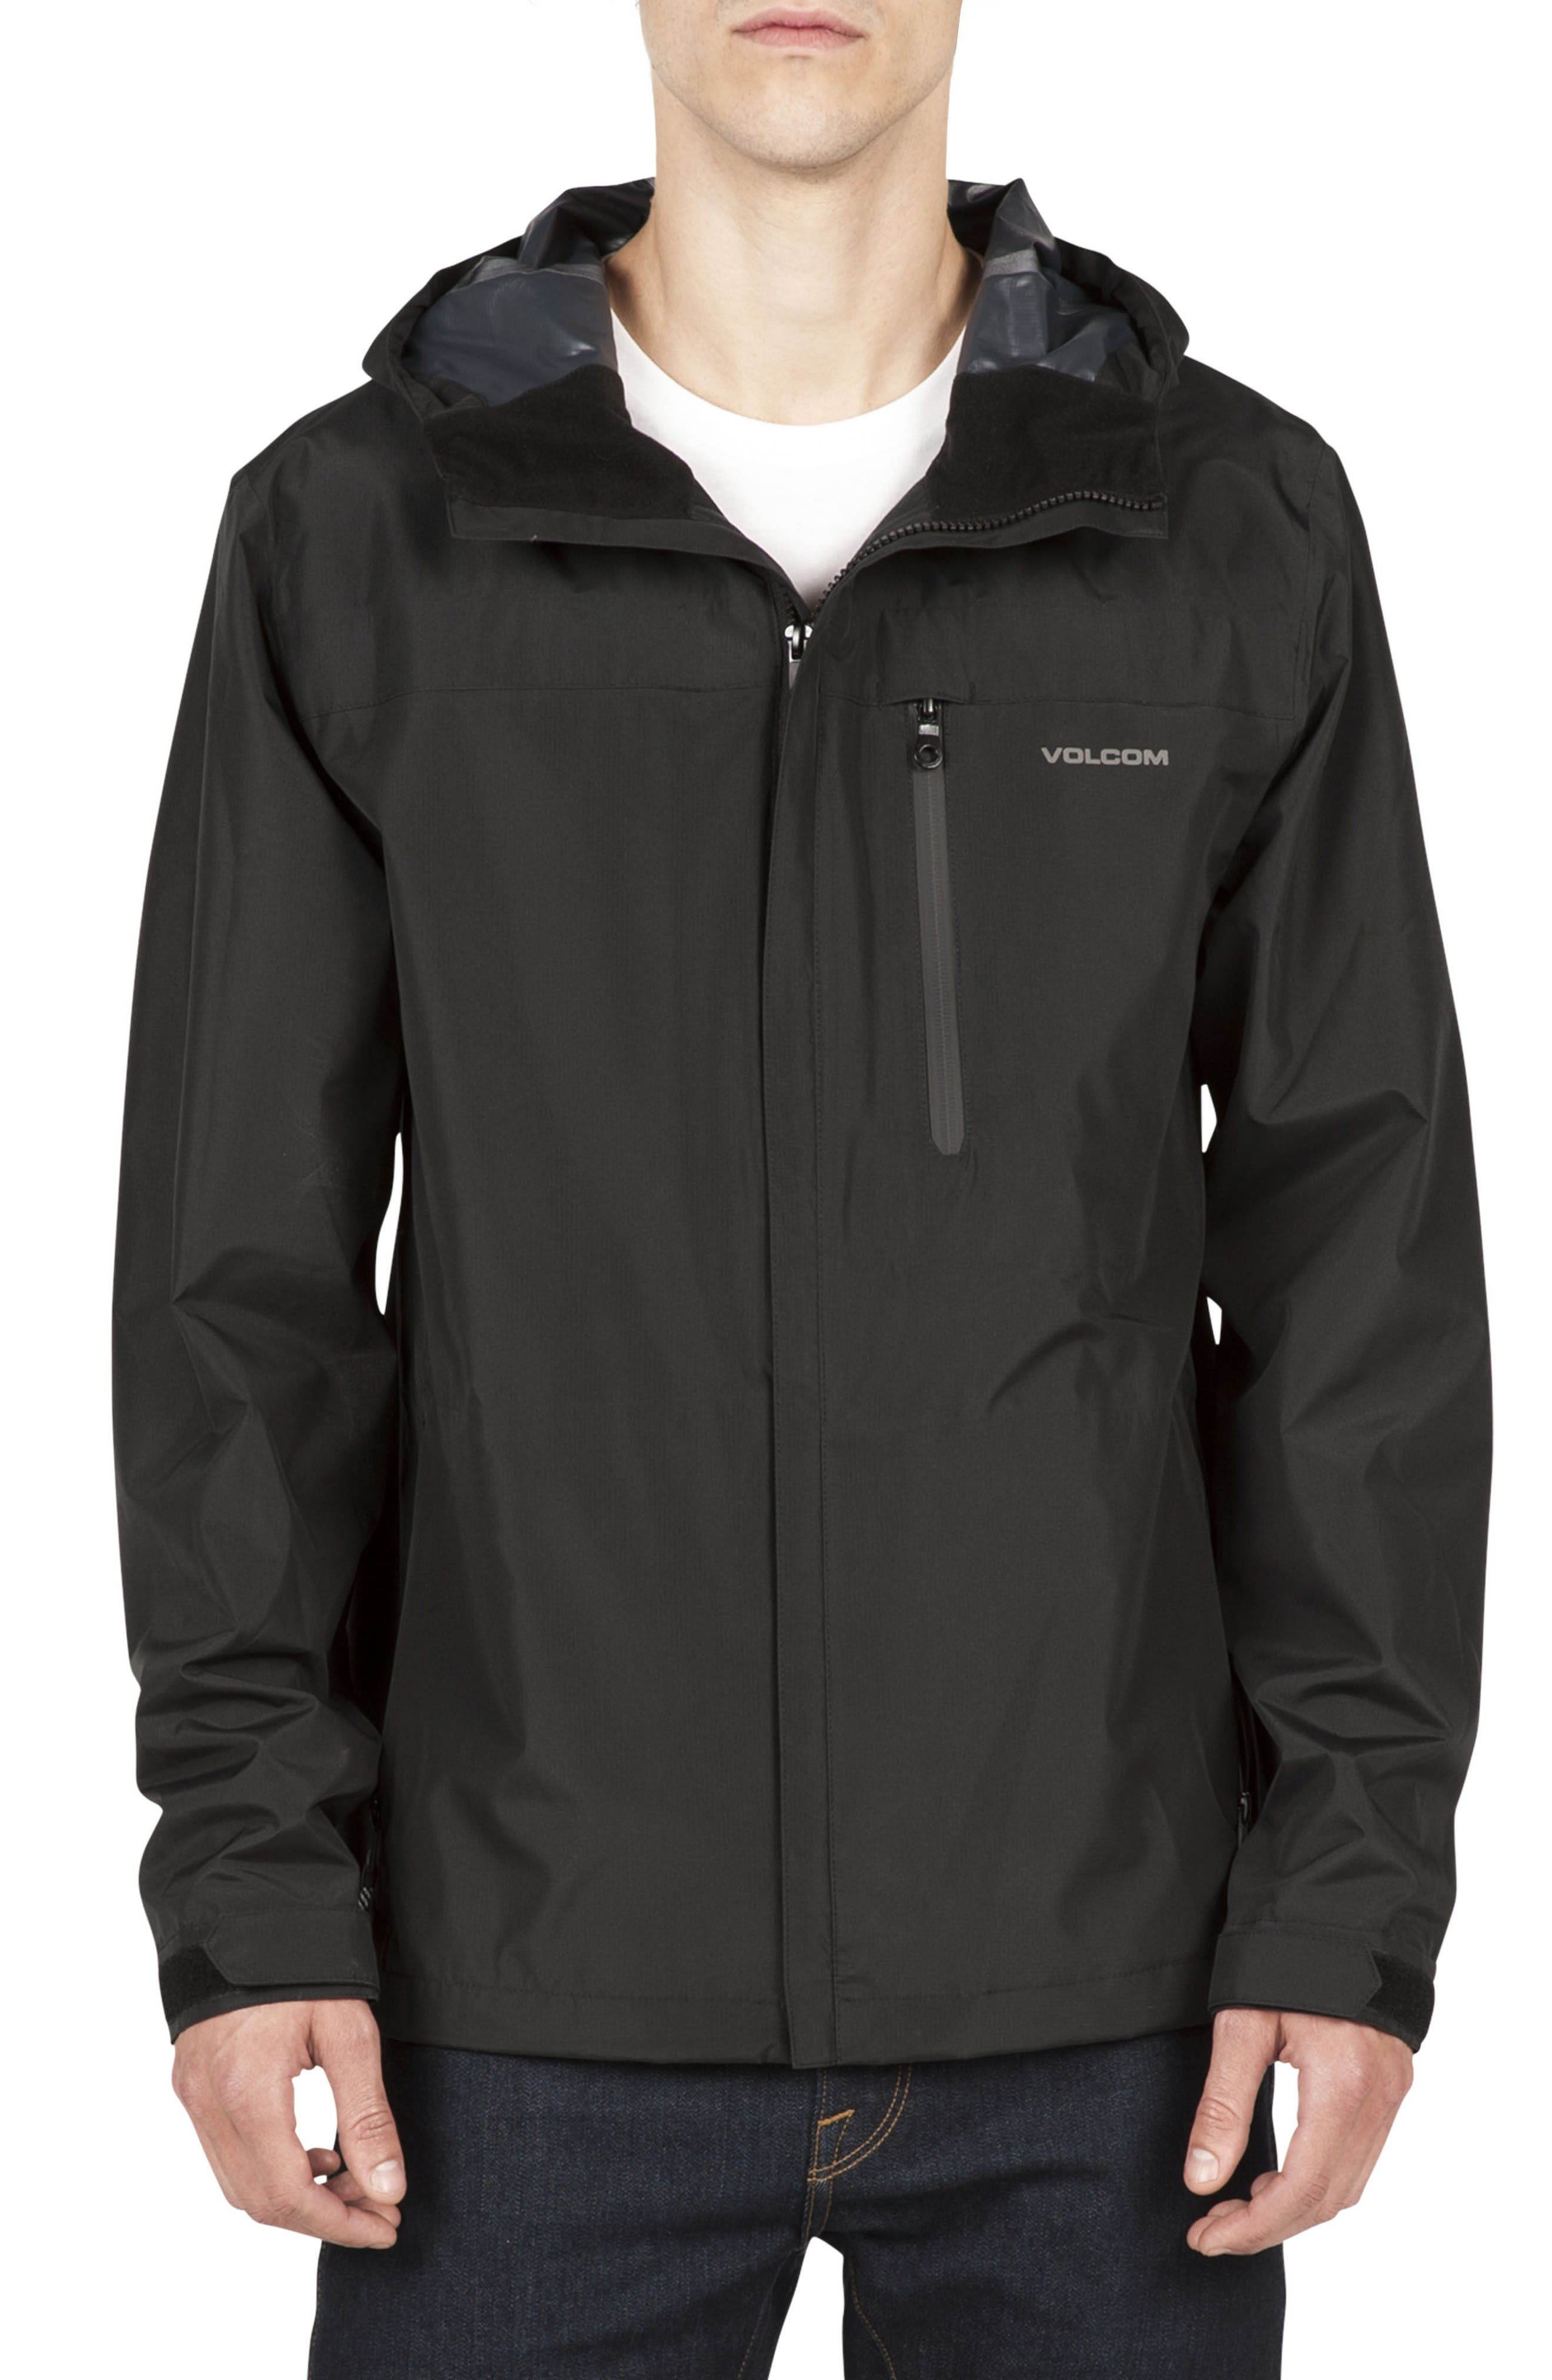 Volcom Water Resistant Zip Jacket